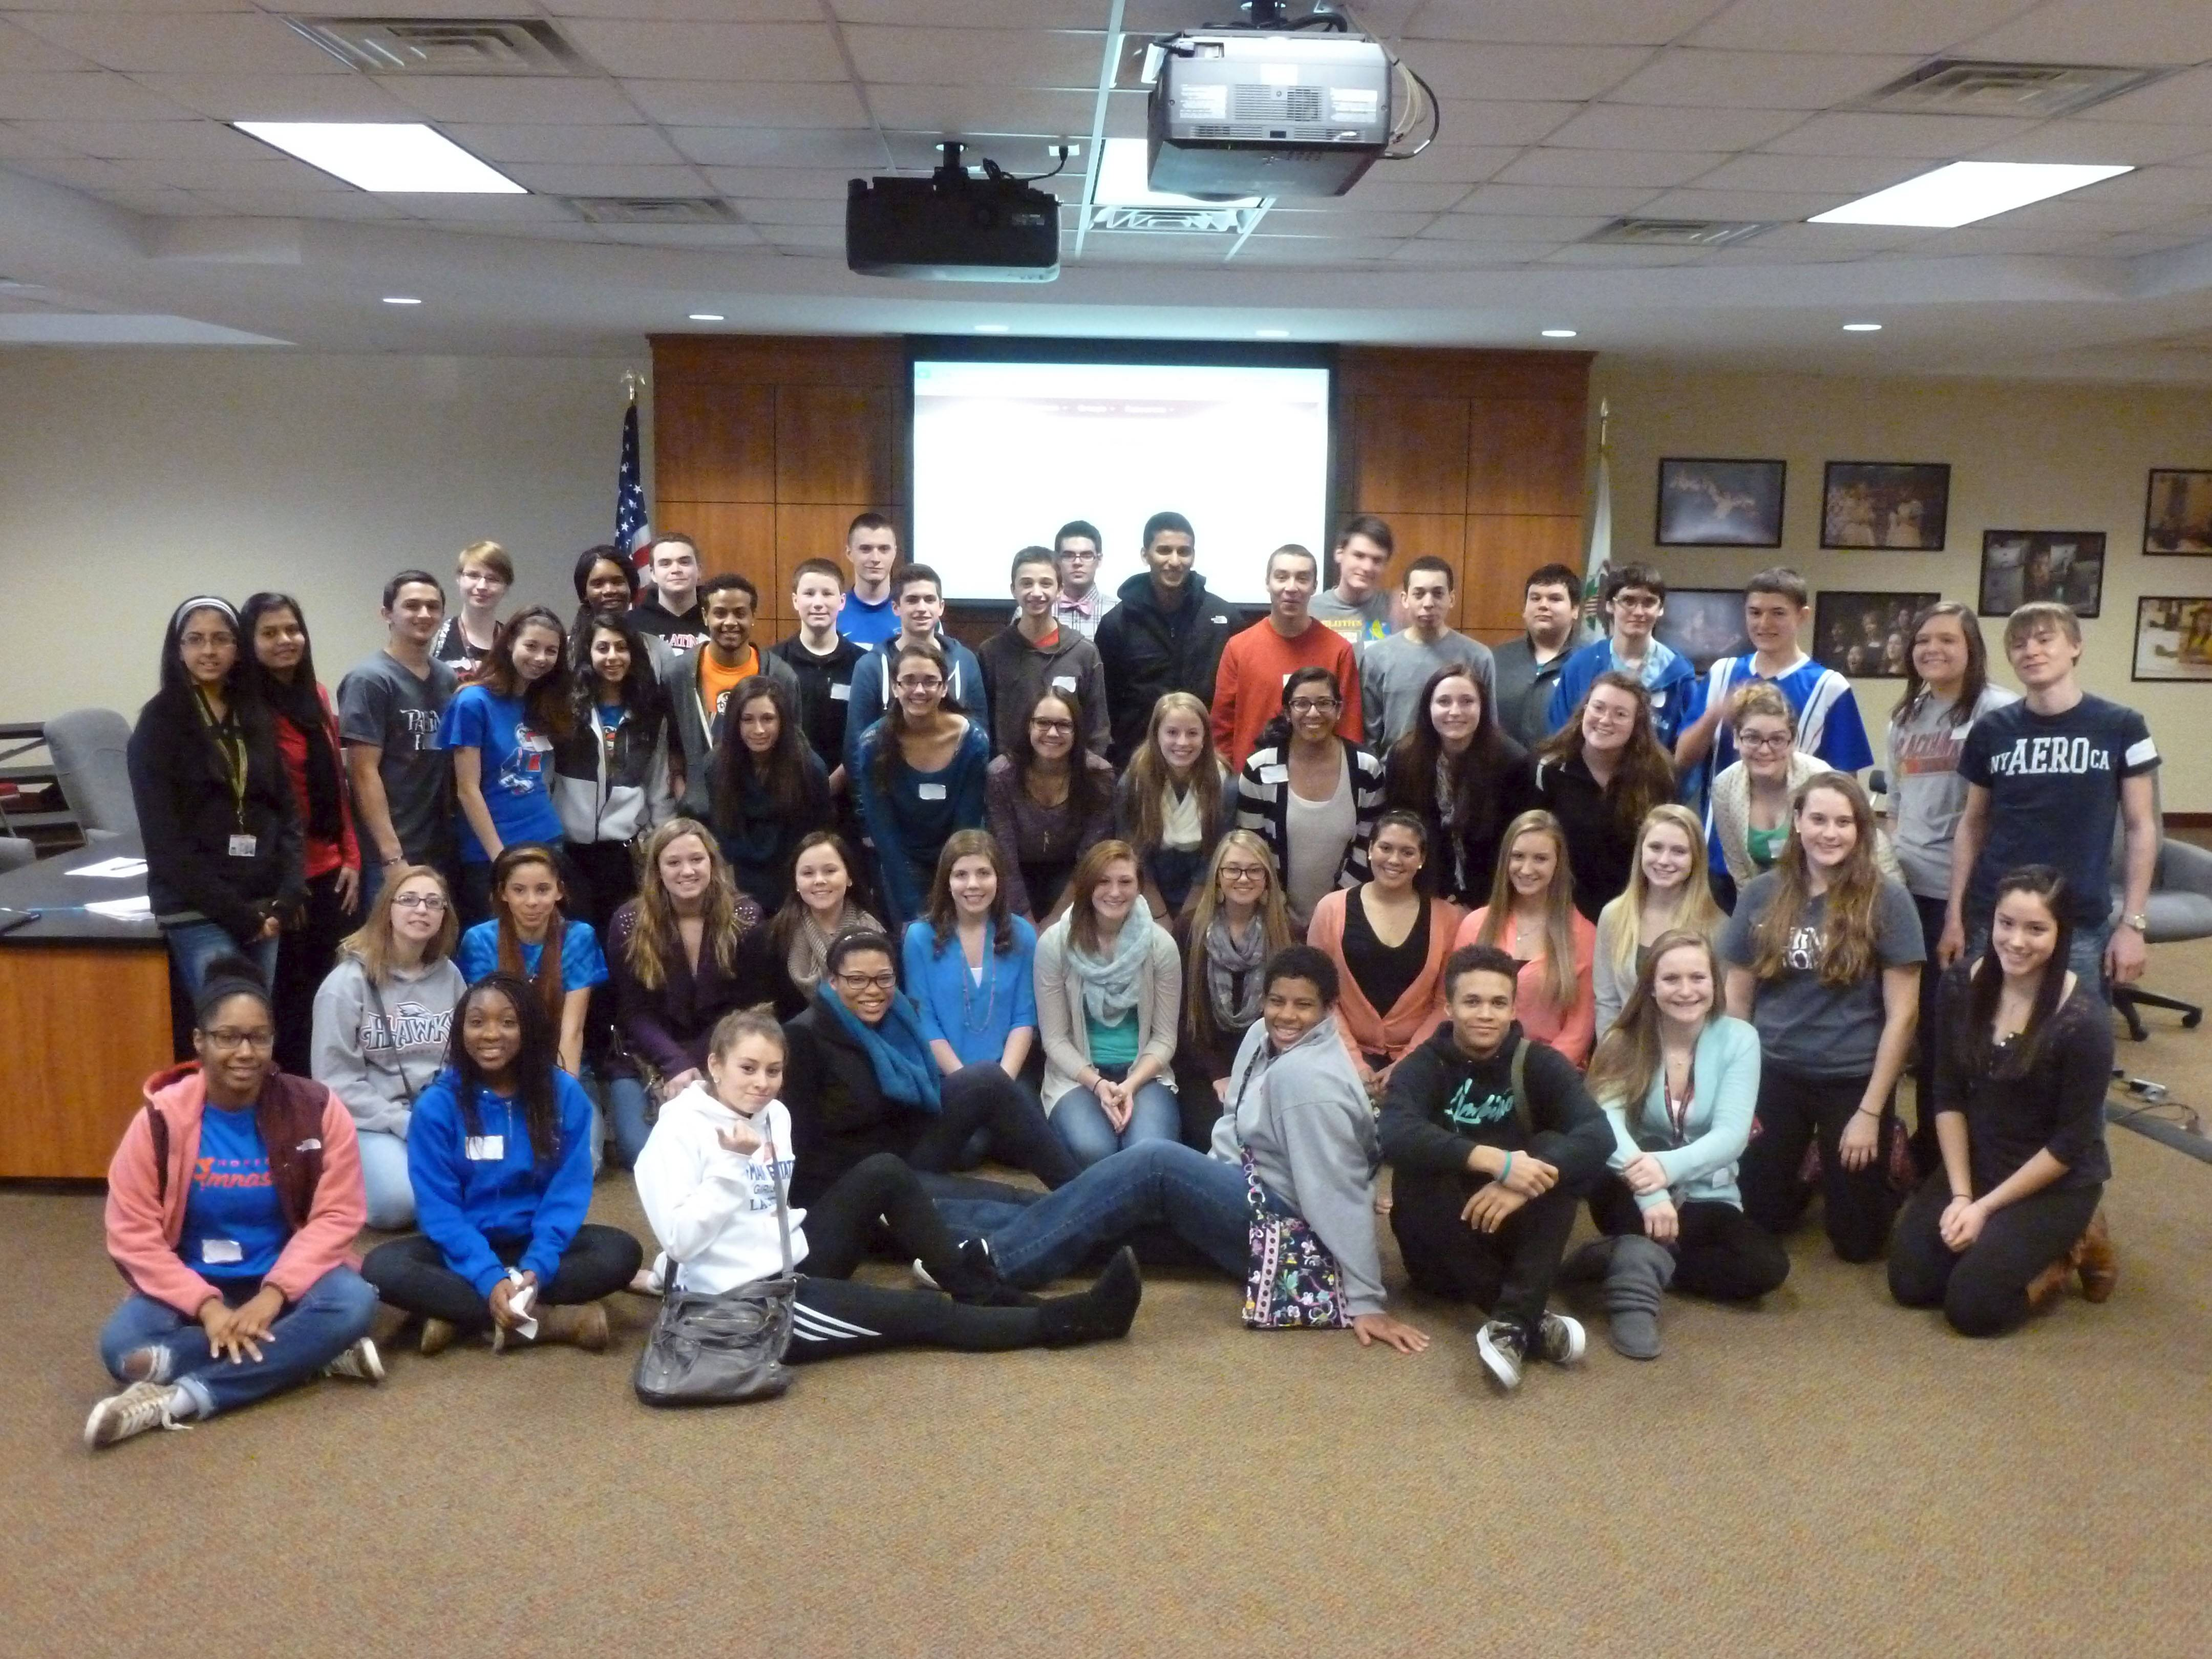 These are the Palatine-Schaumburg High School District 211 students that participated in the Digital Democracy Committee.